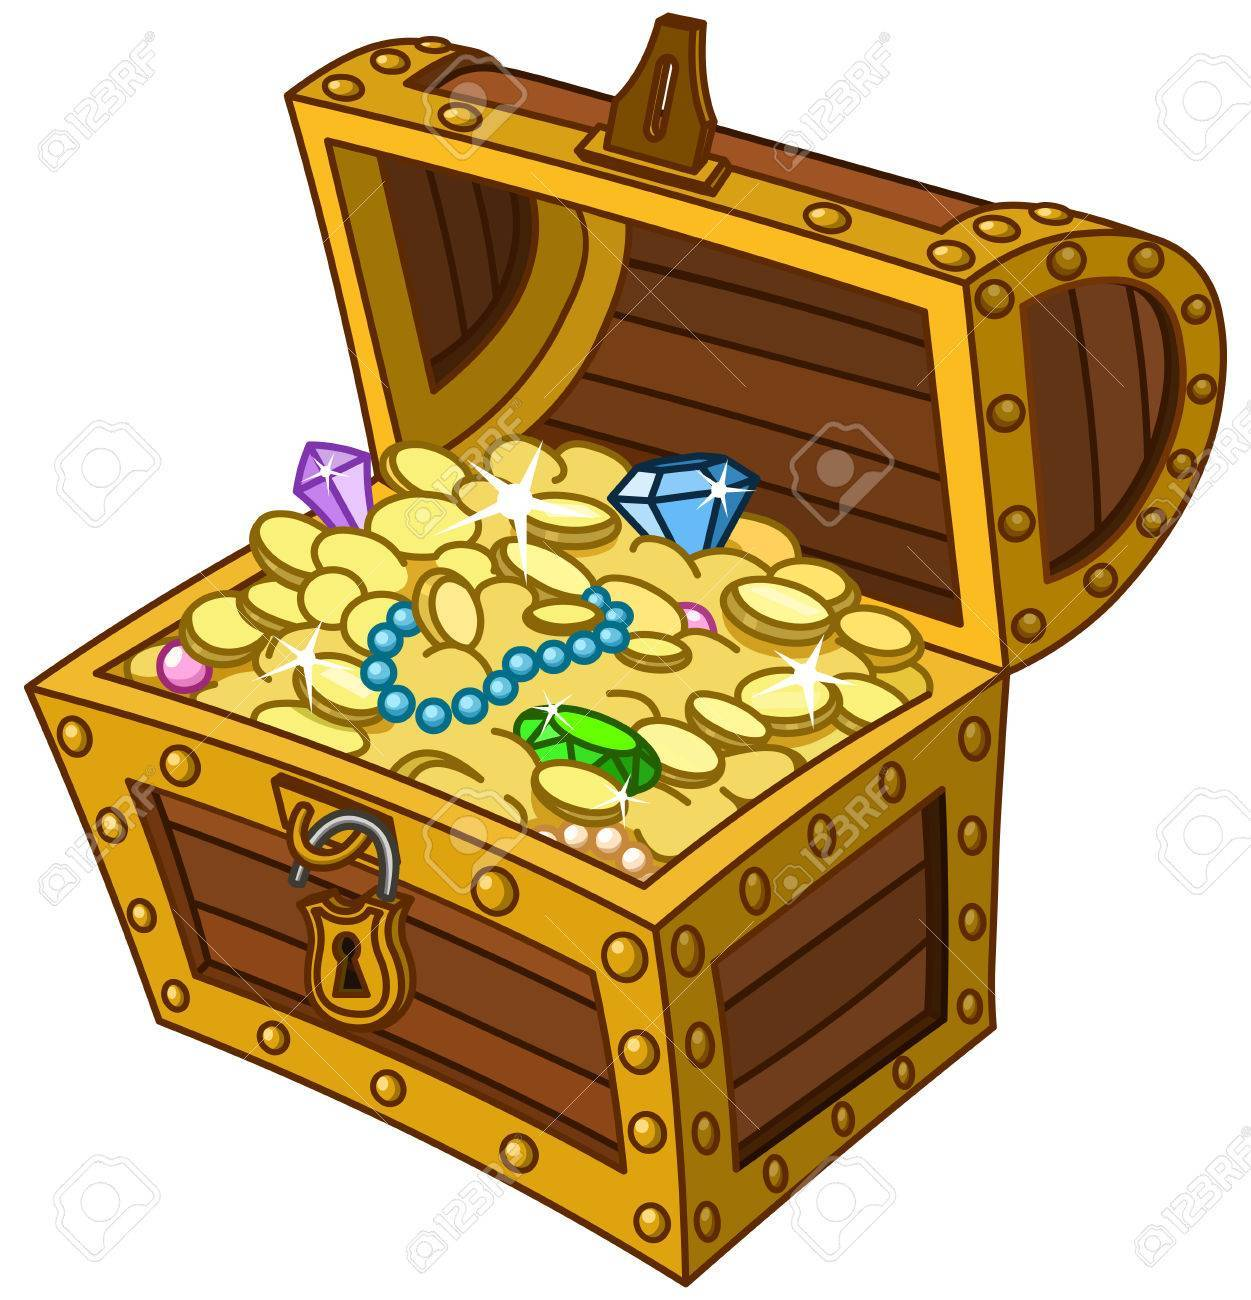 Treasure chest » Clipart Portal.